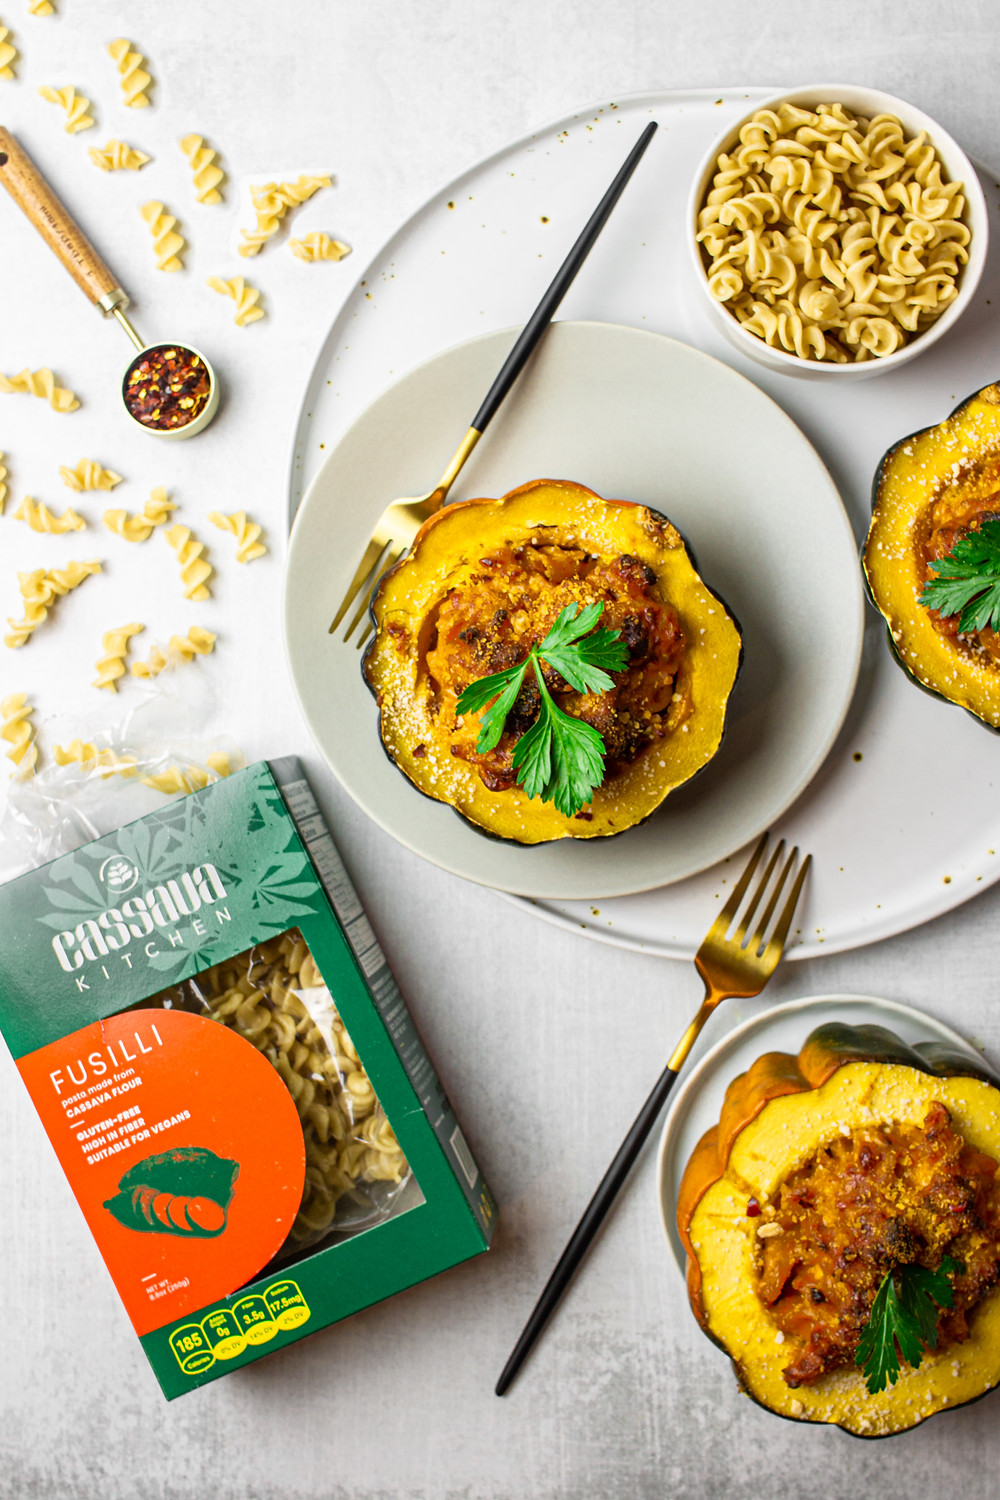 Lactose Free Gluten Free Acorn Squash Mac + Cheese Featuring Cassava Kitchen - Pretty Delicious Life - When I was given the opportunity to develop a few recipes for Cassava Kitchen I was not only so excited to finally try their gluten free products but I was also beyond thrilled to be working with a fellow